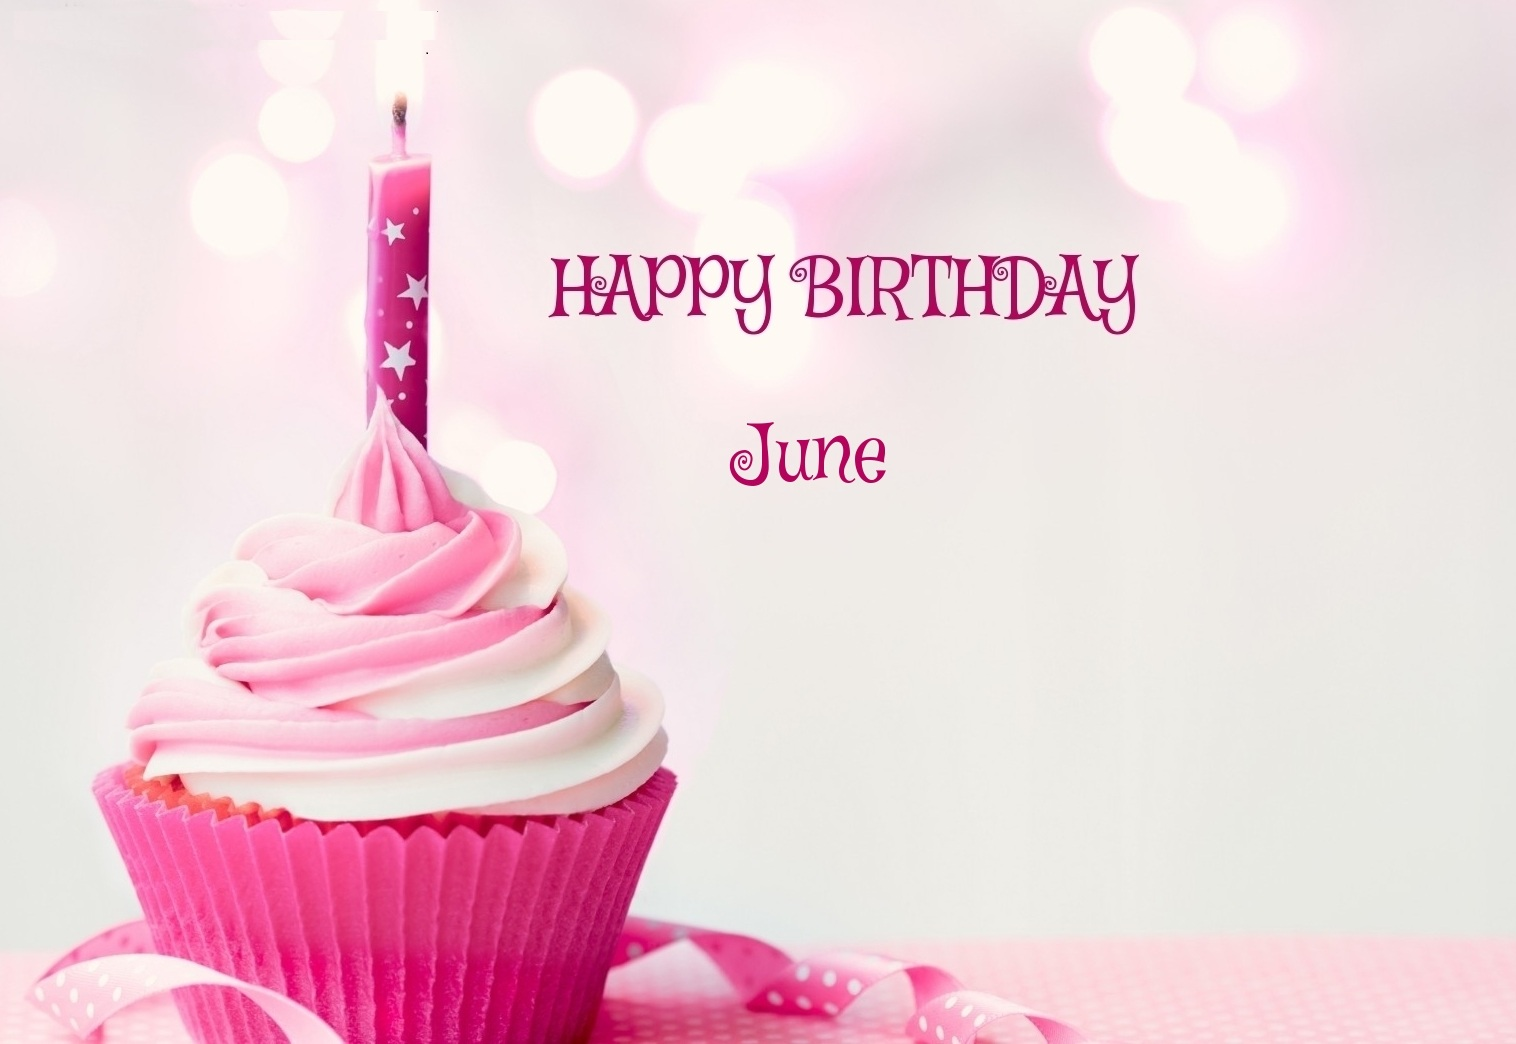 June Birthday Images Cup Cake